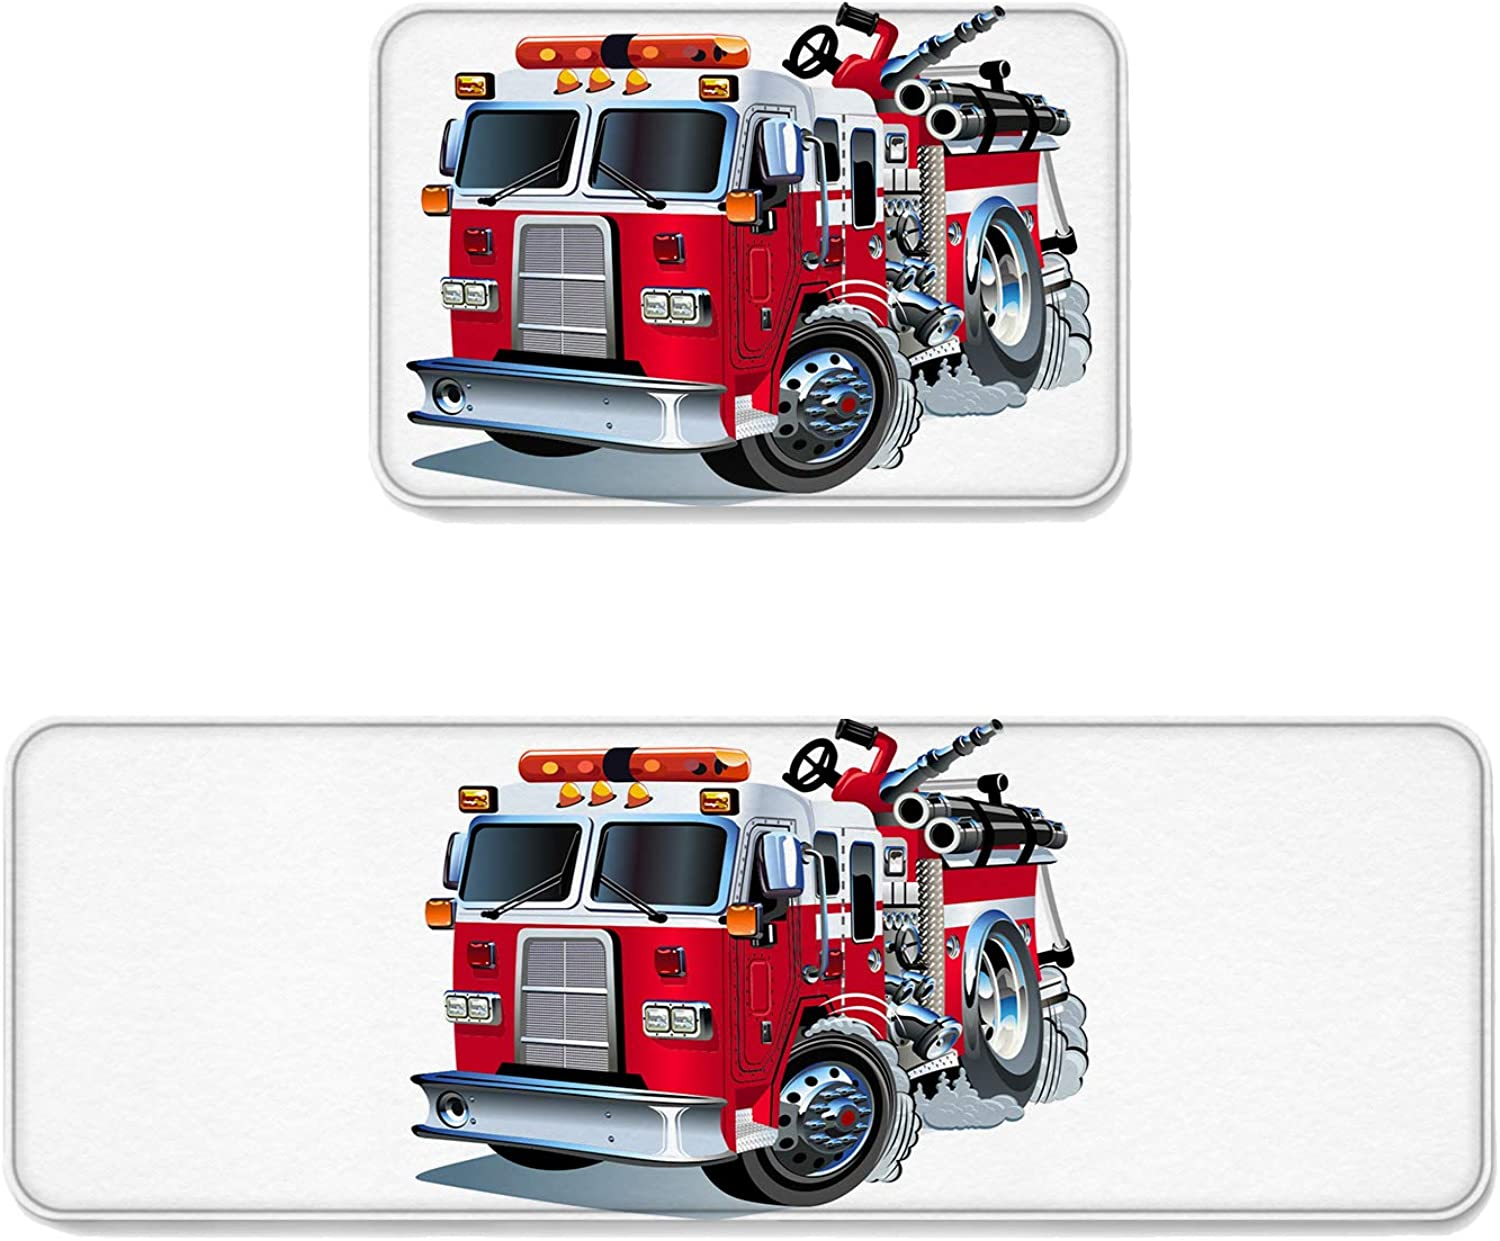 Fantasy Star Kitchen Rug Sets 2 Piece Floor Mats Non-Slip Rubber Backing Area Rugs Cartoon Fire Truck Doormat Washable Carpet Inside Door Mat Pad Sets (19.7  x 31.5 +19.7  x 63 )